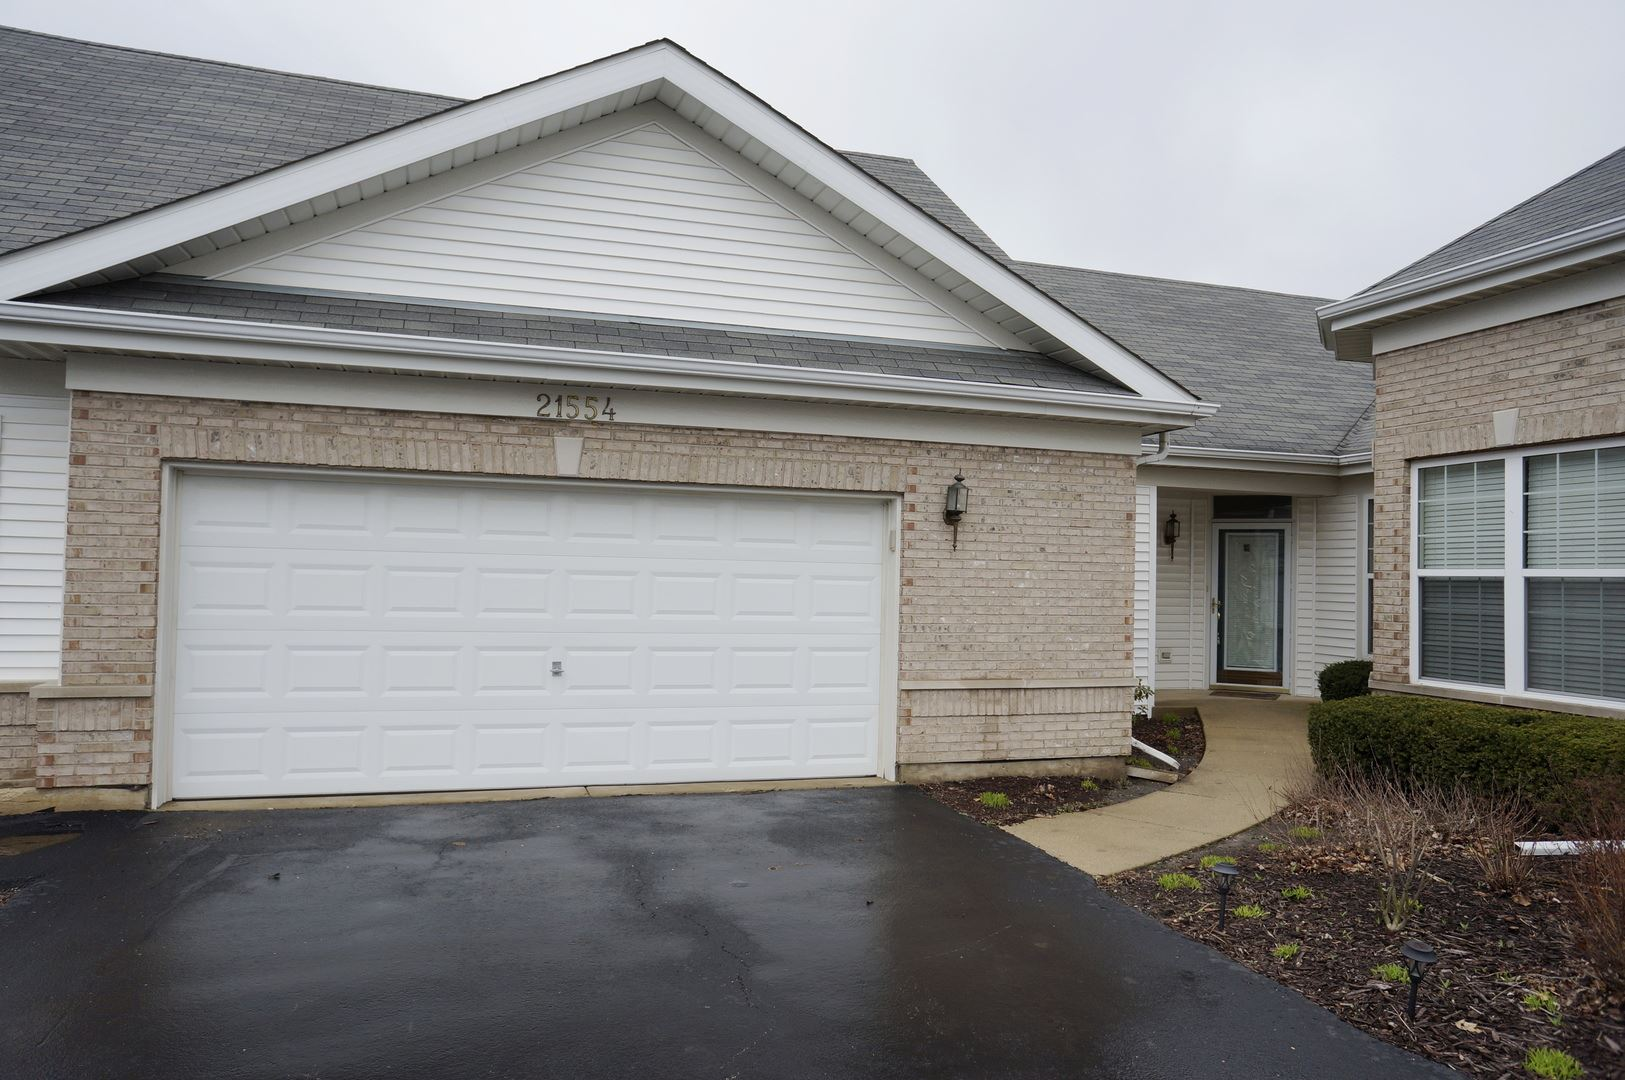 21554 Papoose Lake Court, Crest Hill, IL 60403 - #: 10678890